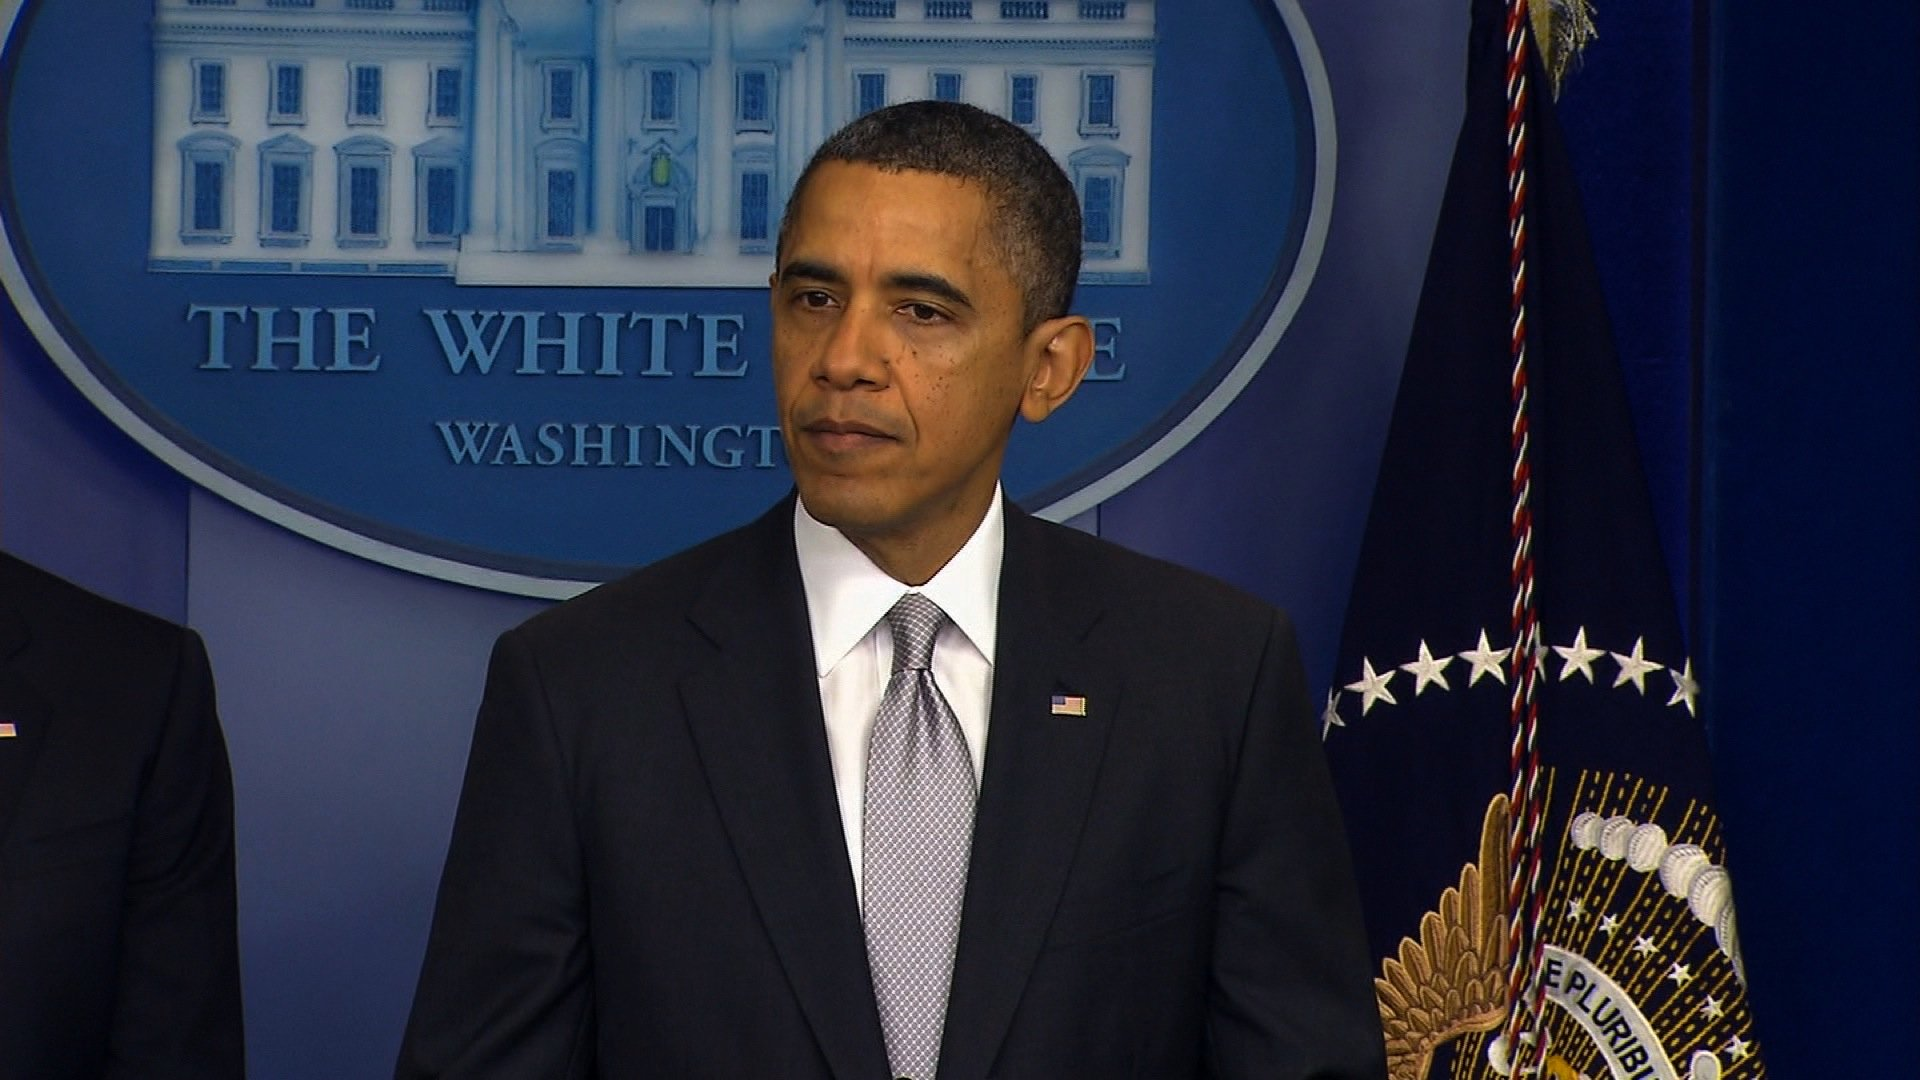 """President Barack Obama said Wednesday, December 19, 2012 in a statement to the press, that the vast majority of gun owners in America are responsible, but the more than 10,000 Americans killed every year by guns was """"violence we cannot accept as routine."""" """"We won't prevent them all, but that can't be an excuse"""" not to try, the president added."""